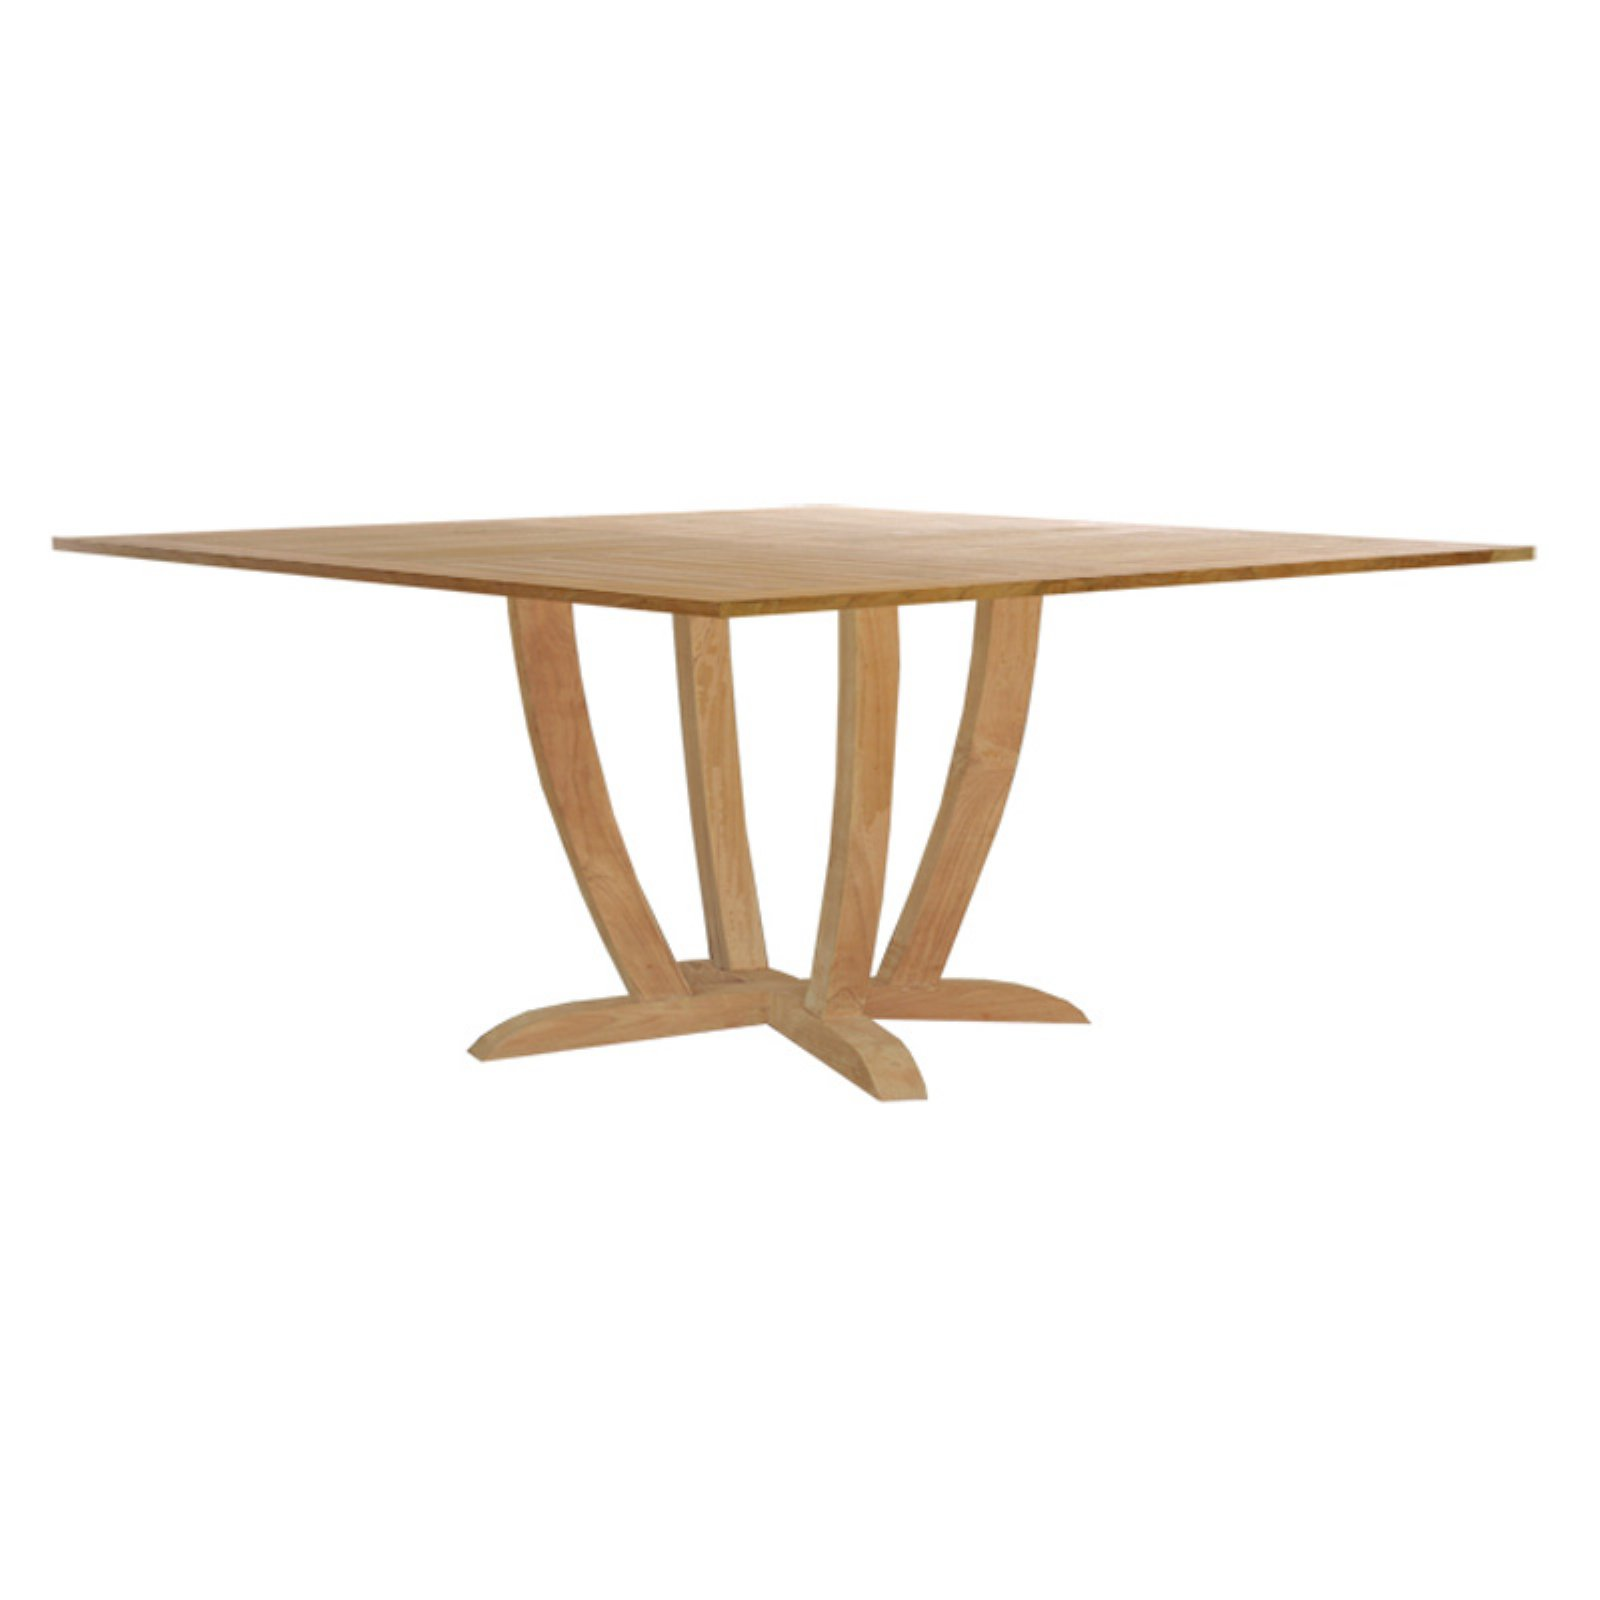 Chic Teak Amsterdam Teak Square Patio Dining Table by